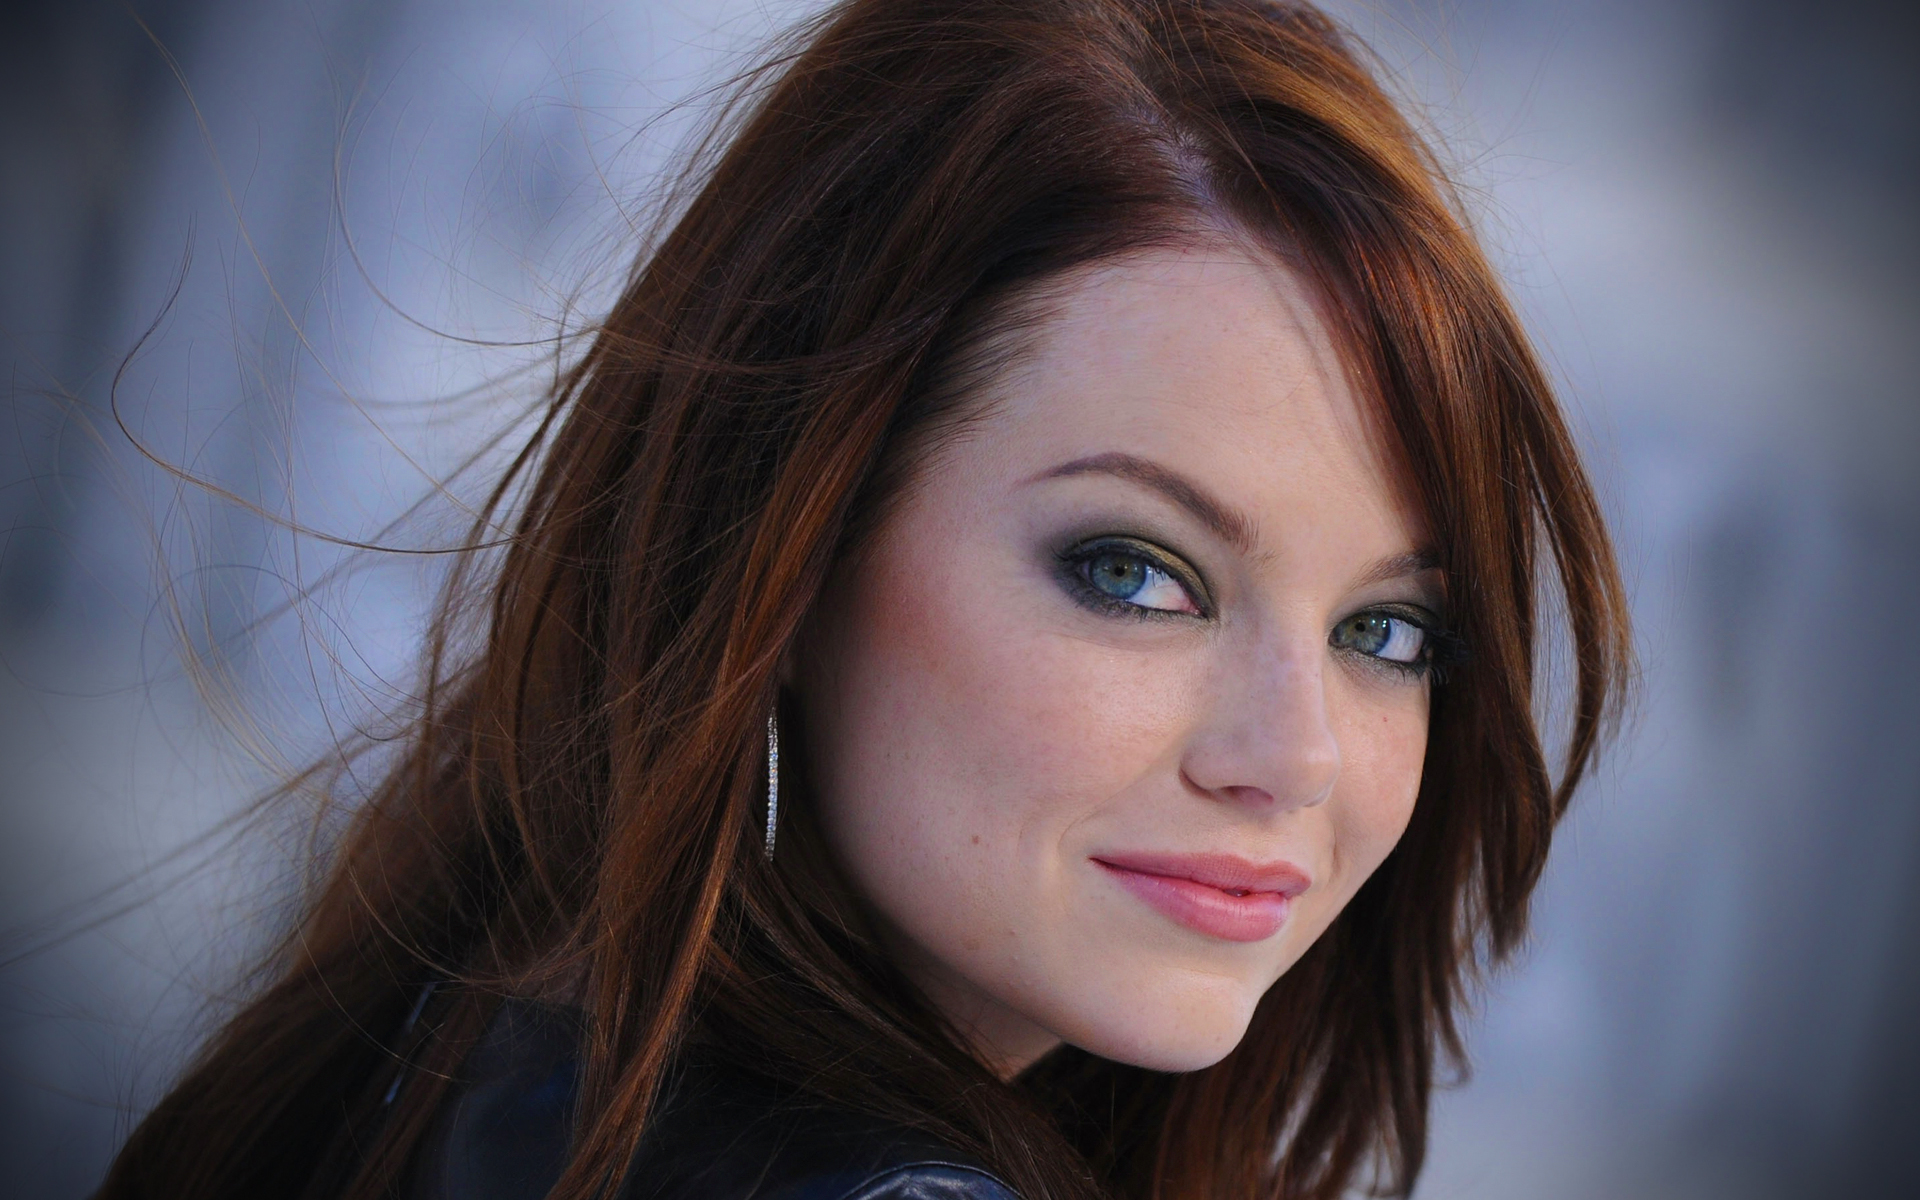 overview roles and movies of actress Emma Stone